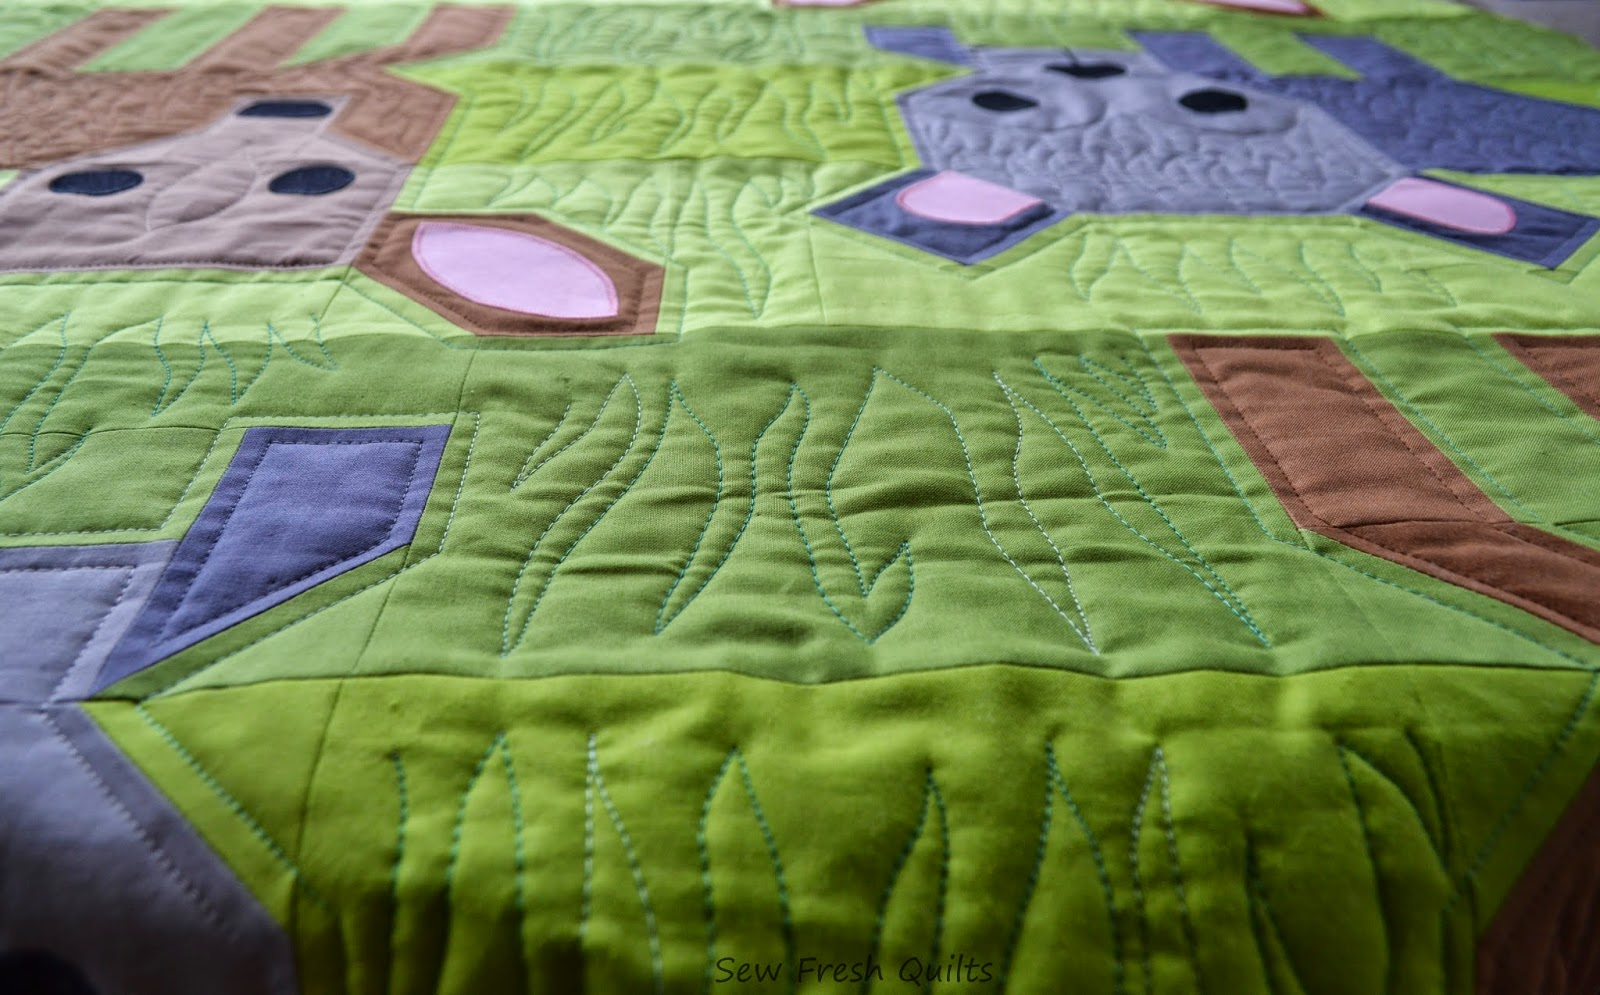 http://sewfreshquilts.blogspot.ca/2014/10/wild-life-finished-top.html